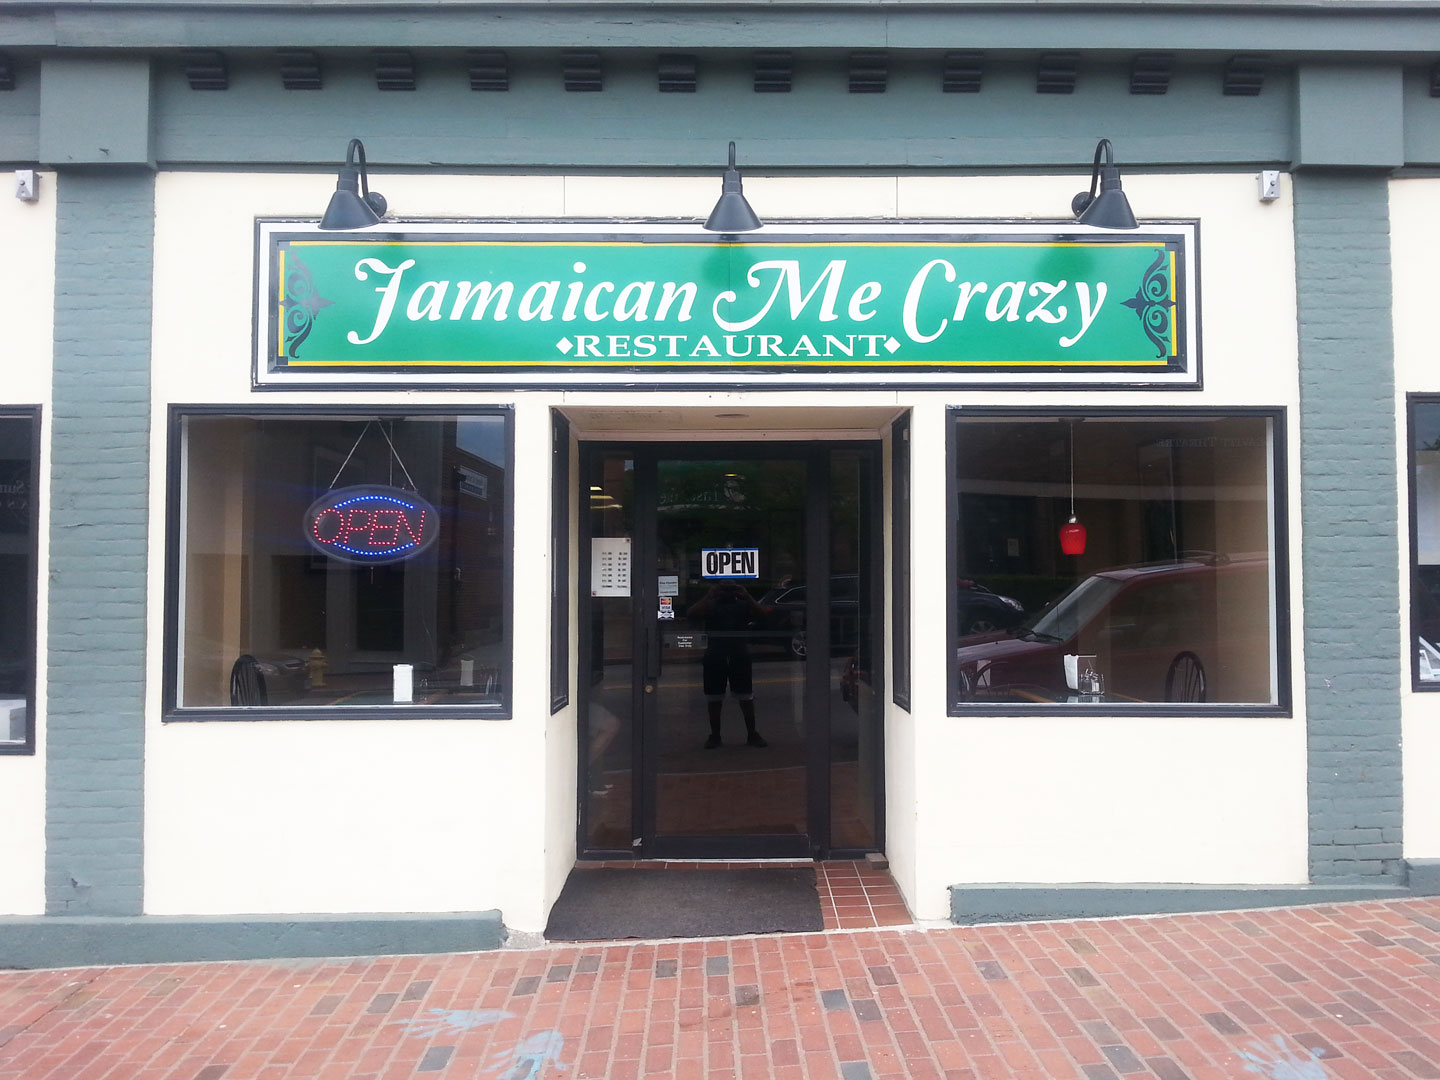 Jamaican Me Crazy - Willimantic, CT - Contact Us: 1-860-942-8831 Address: 776 Main Street, Willimantic, CT 06226